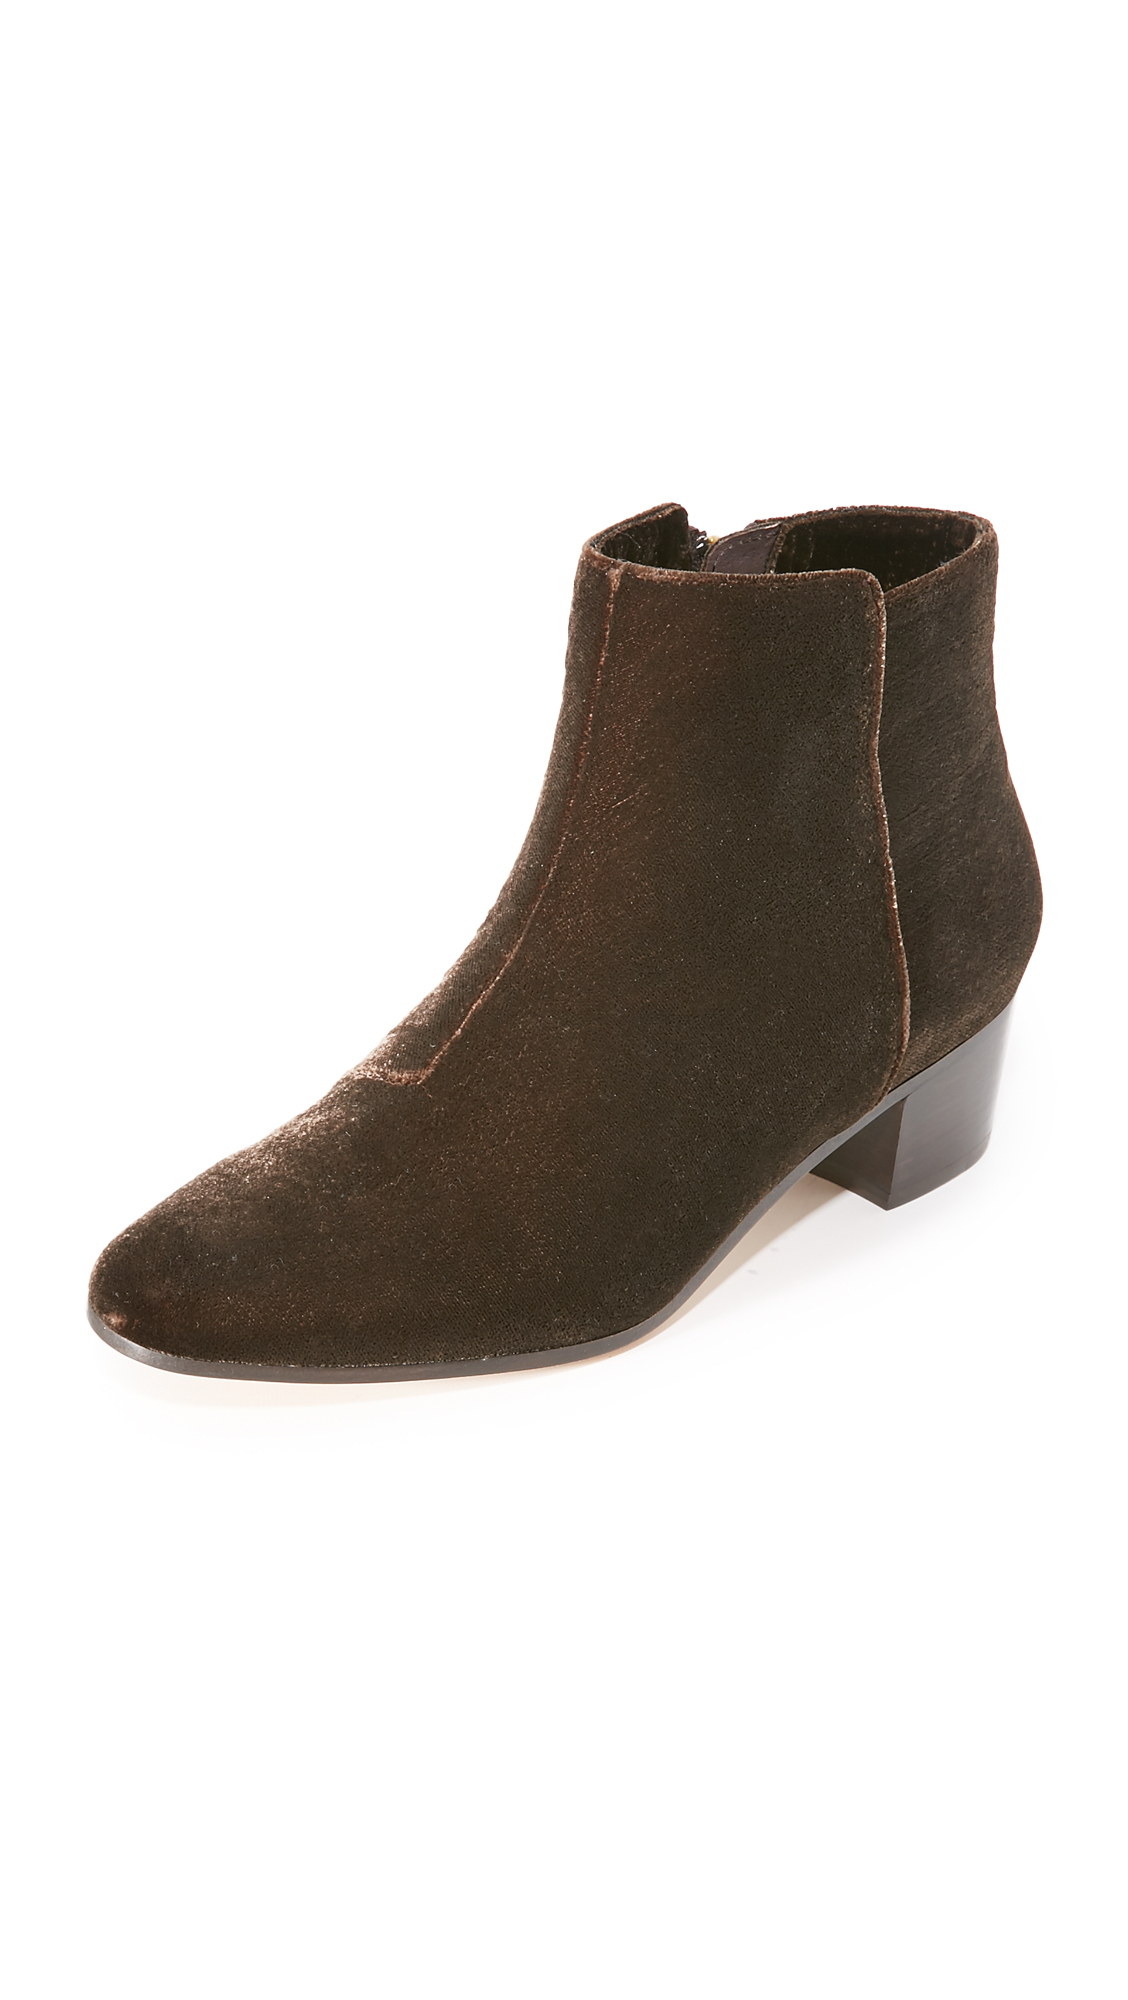 Joie Fenella Booties - Brown